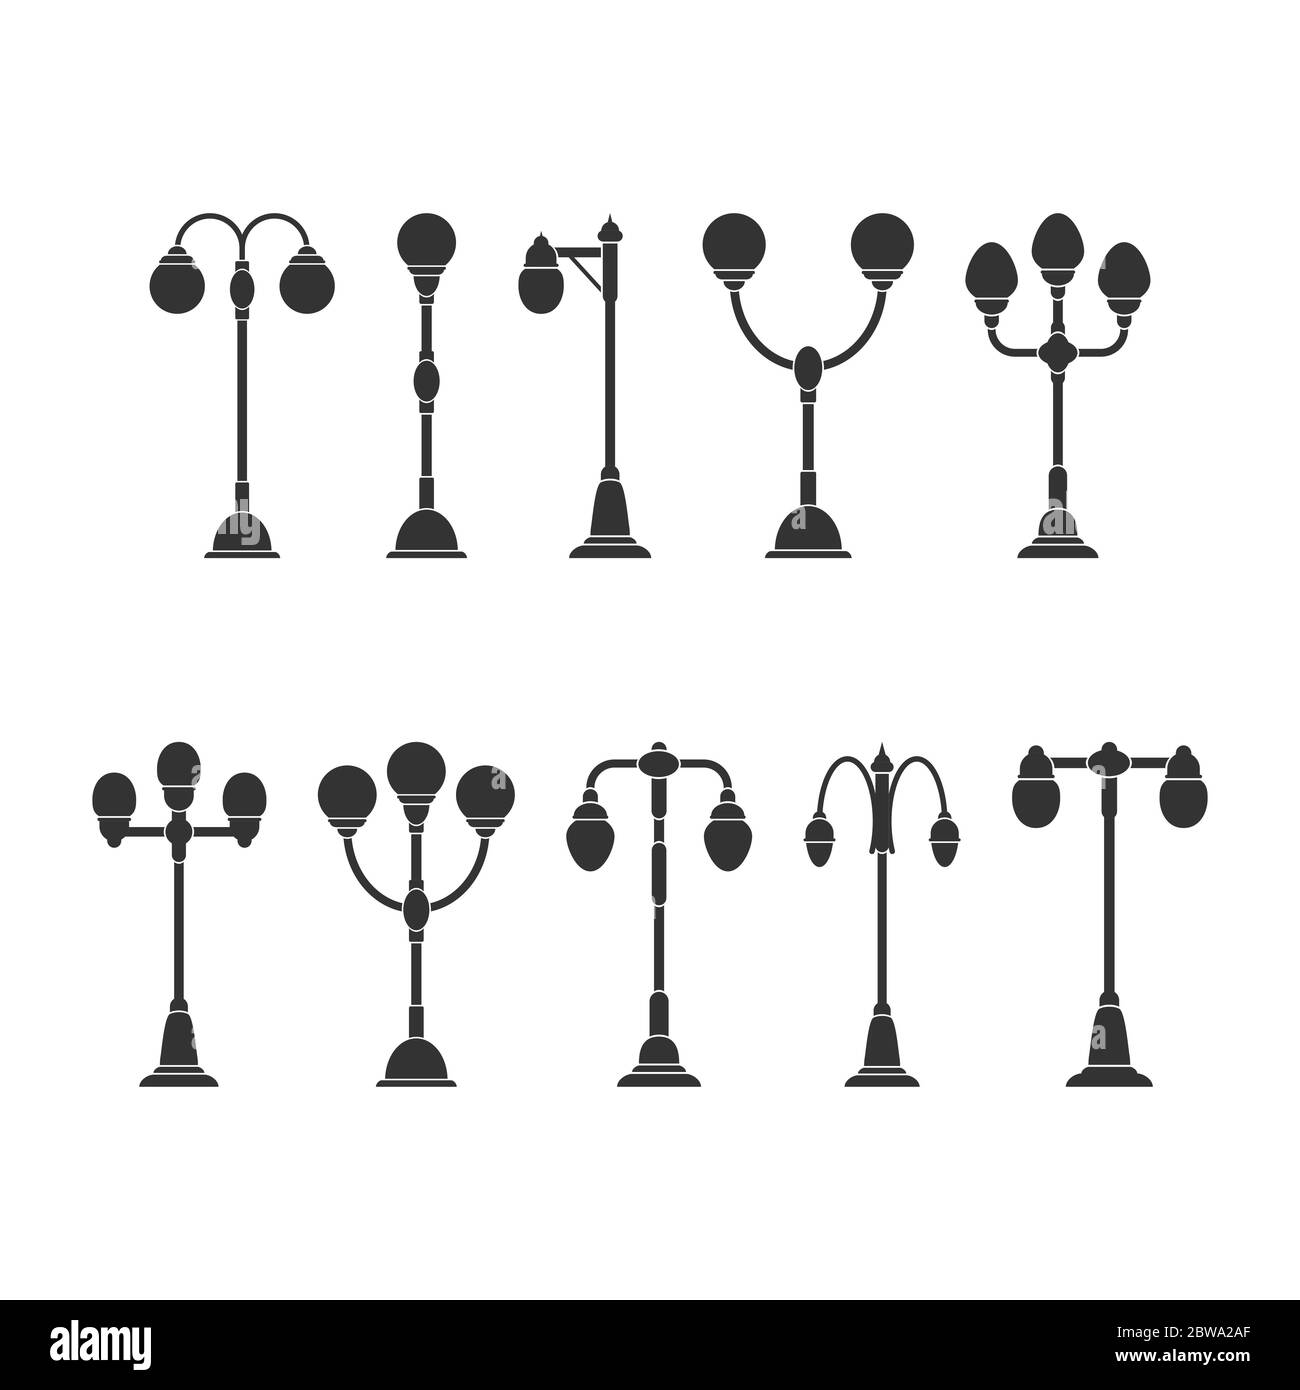 set of lighting lights. Vector illustration for theme design. Isolated on a white background. Simple design. Stock Vector